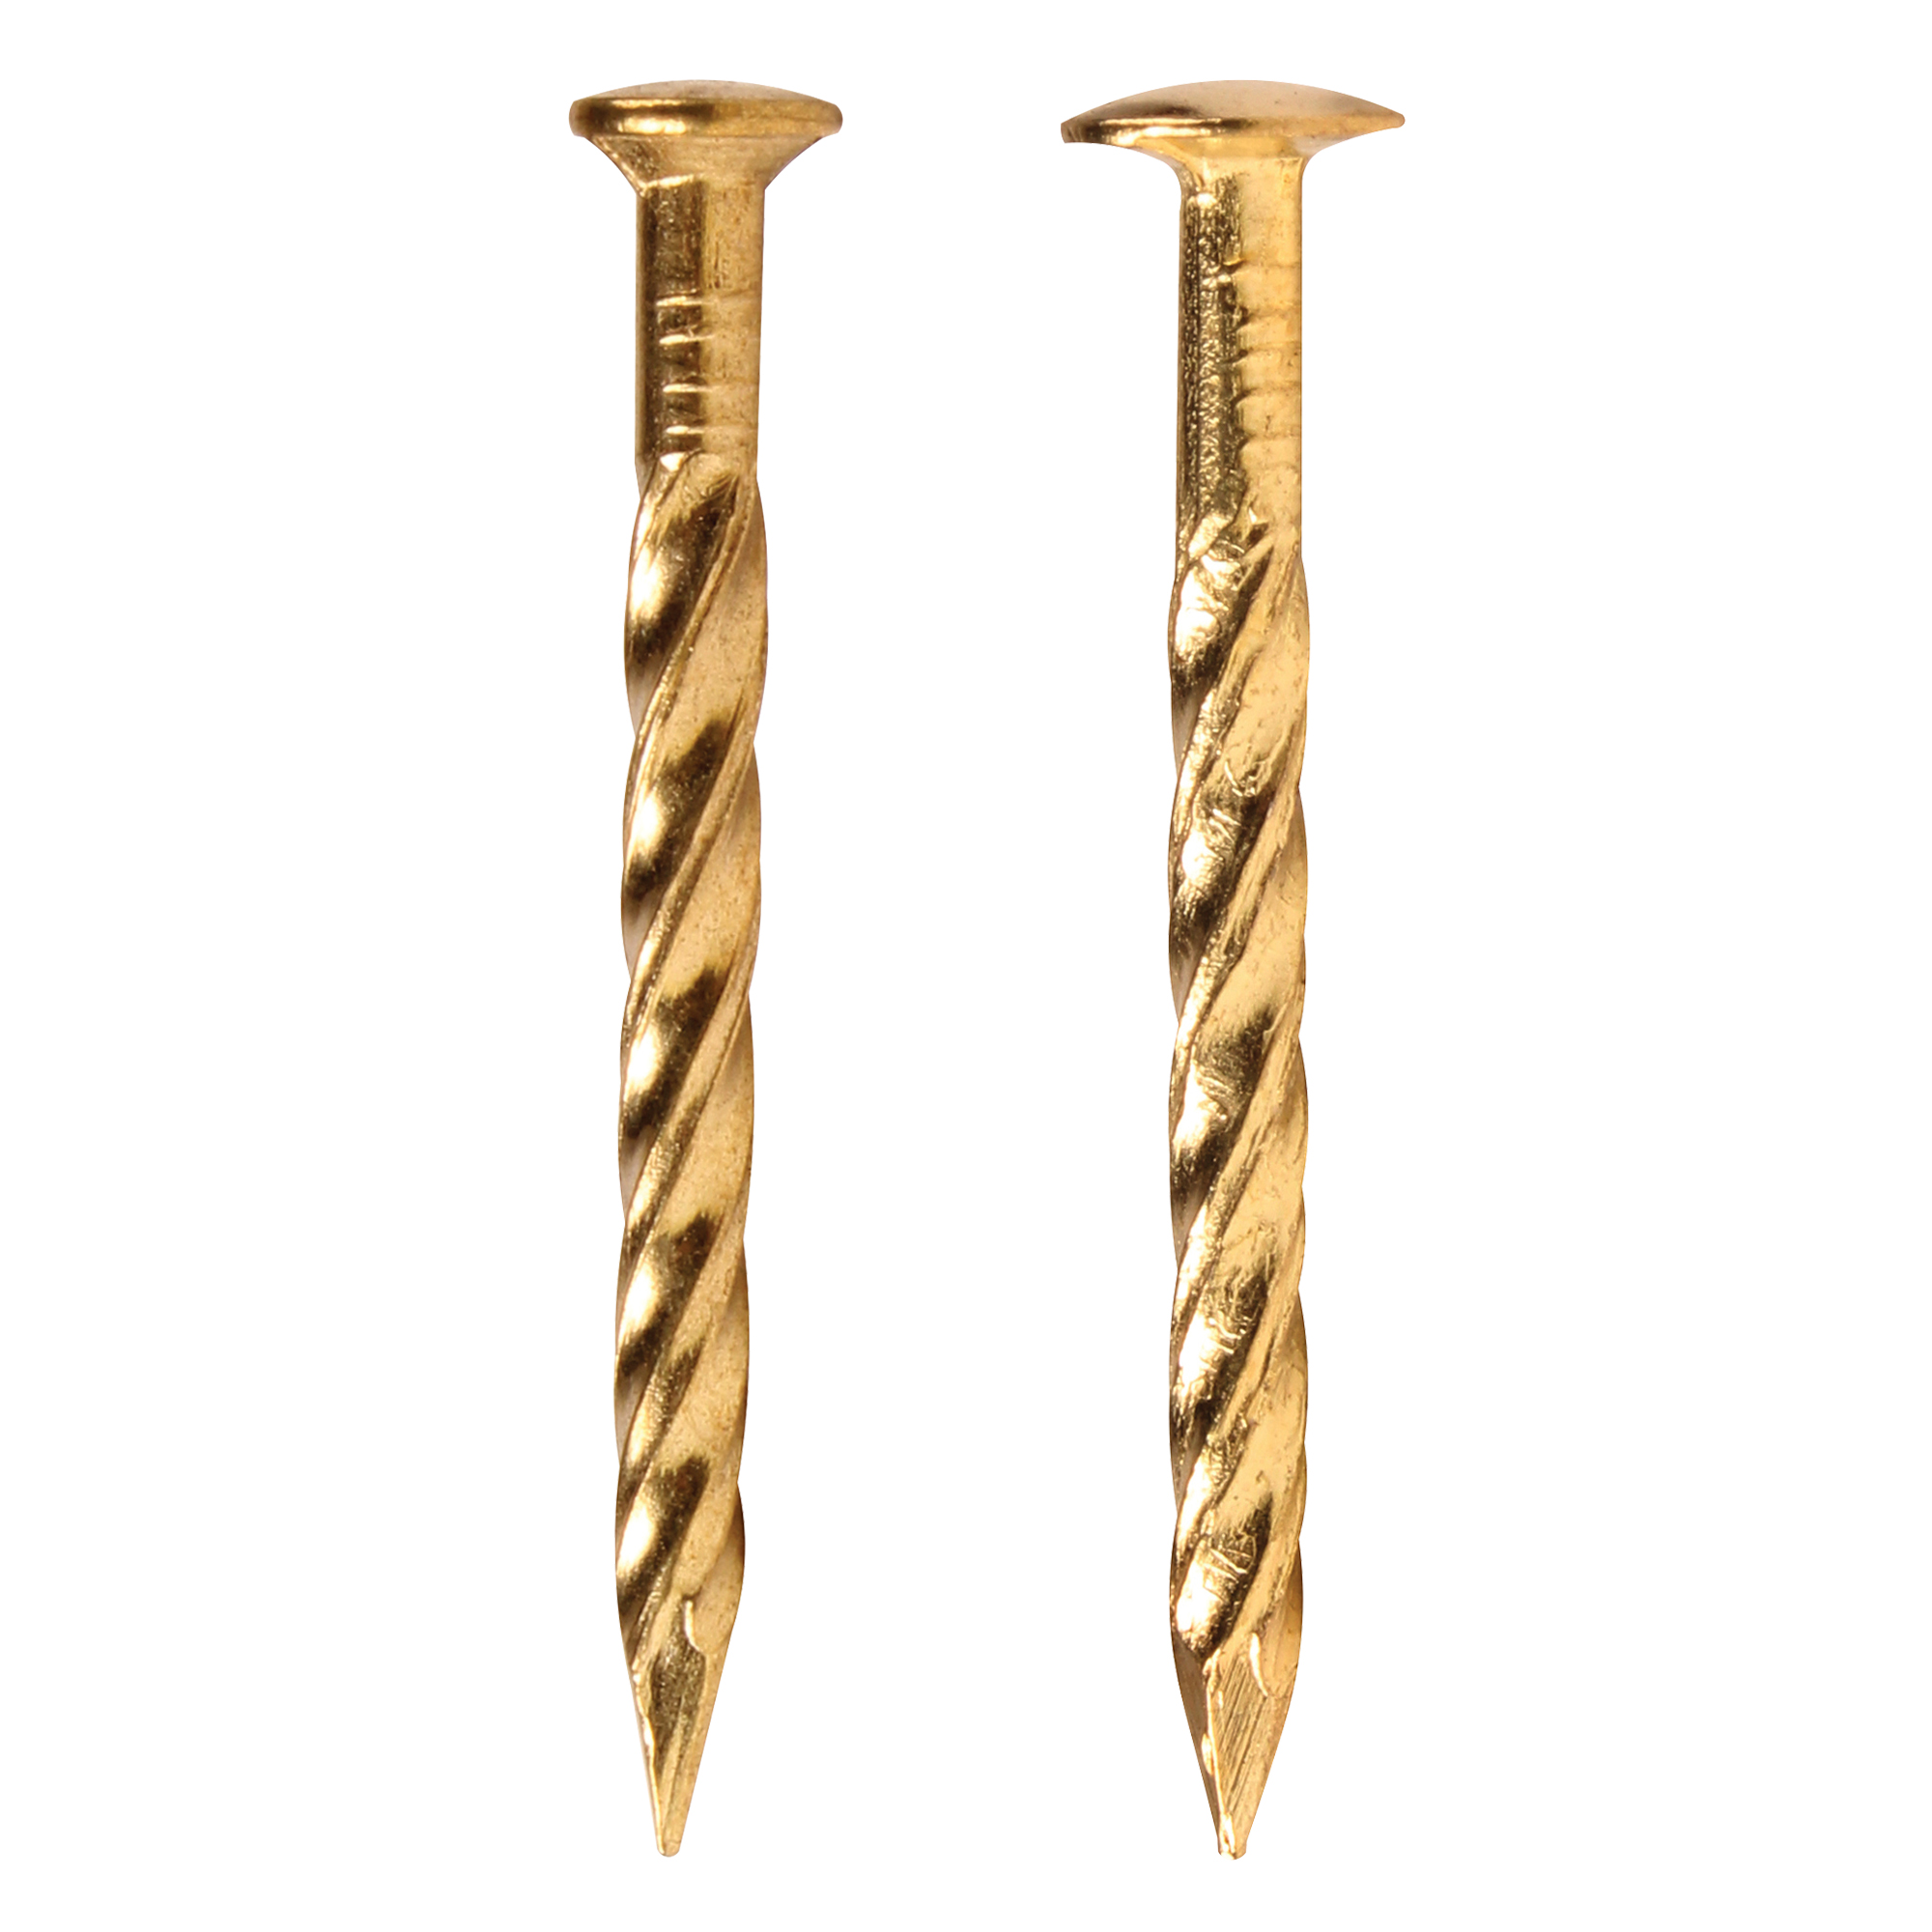 13 Gauge Drive Screw Nails Brass